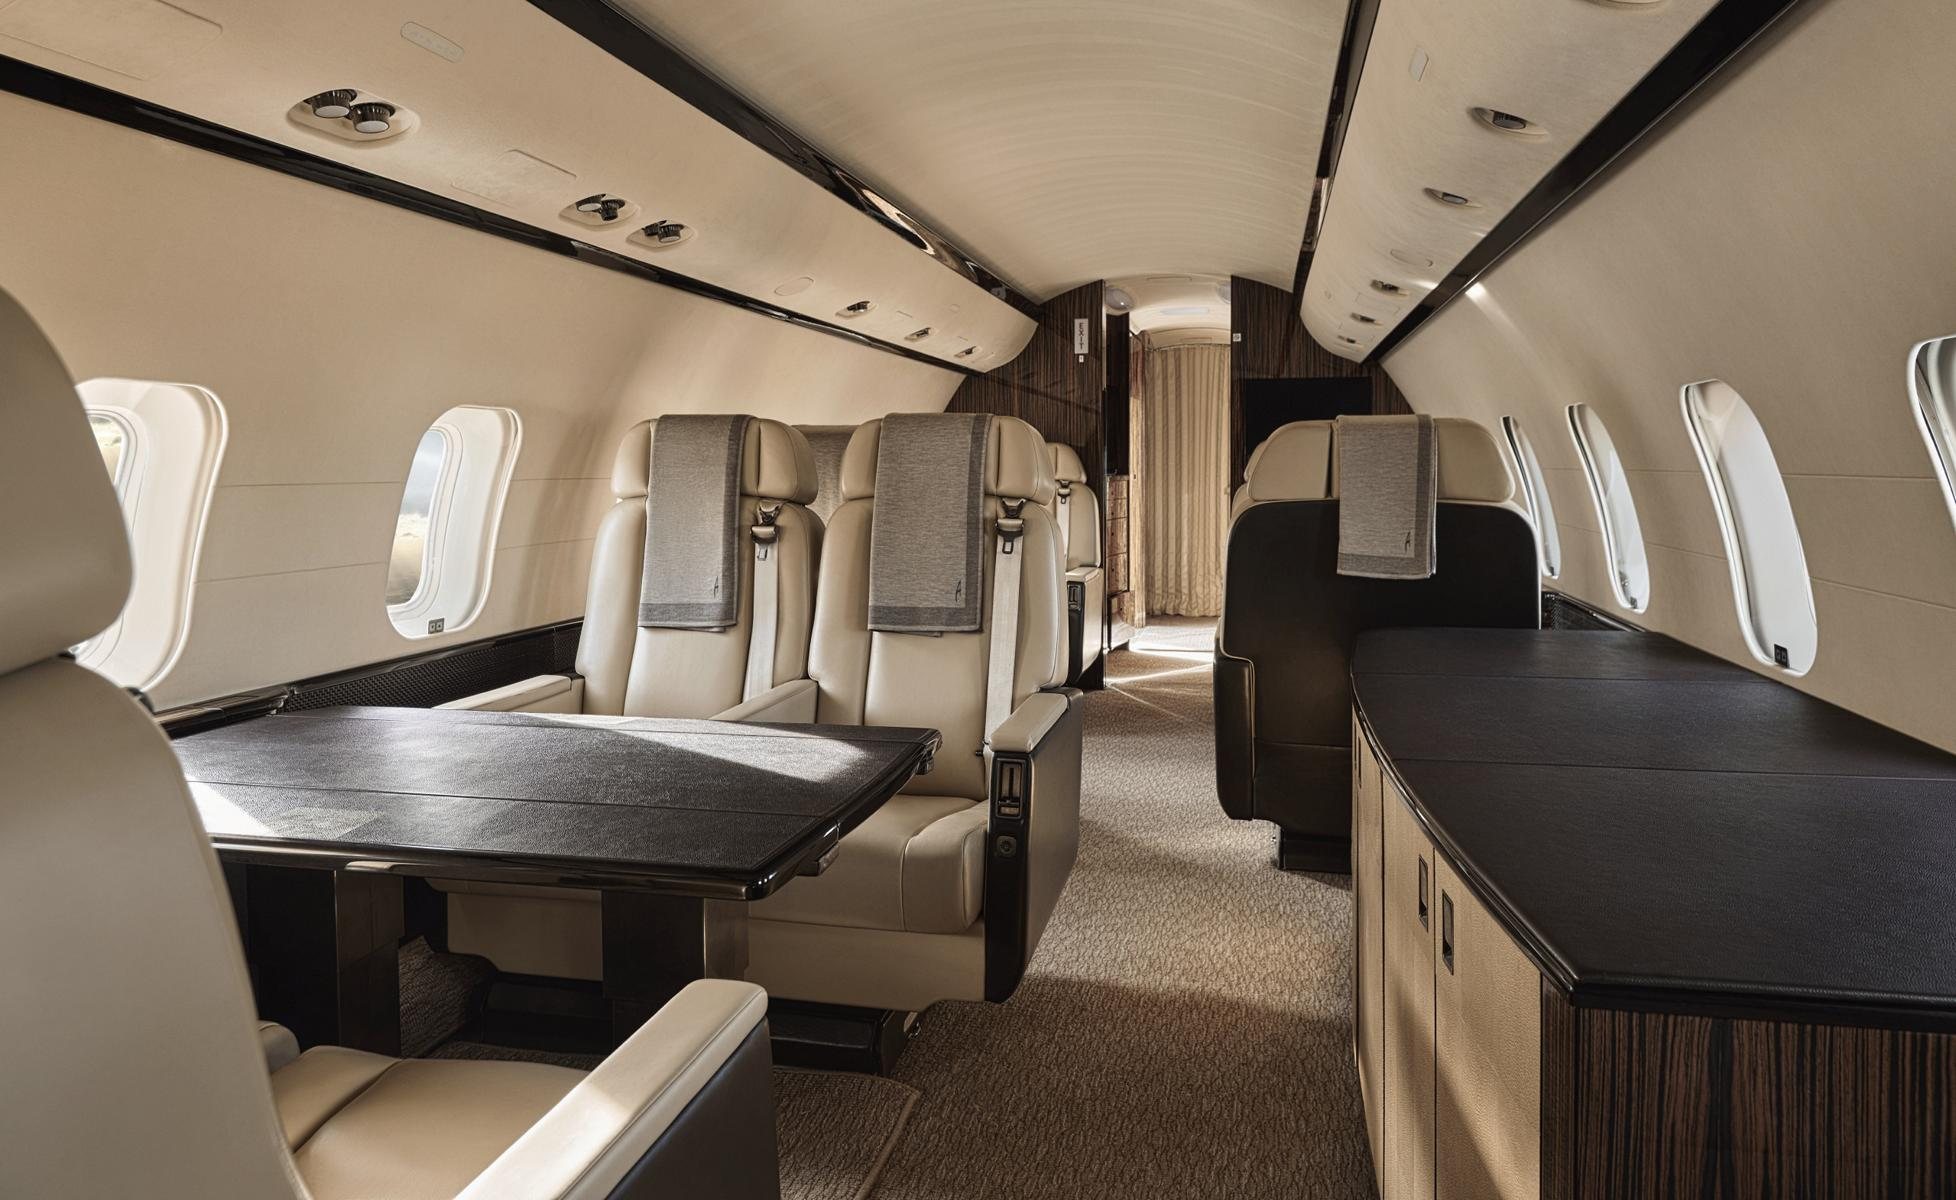 onefinemoment_AMANPrivateJet